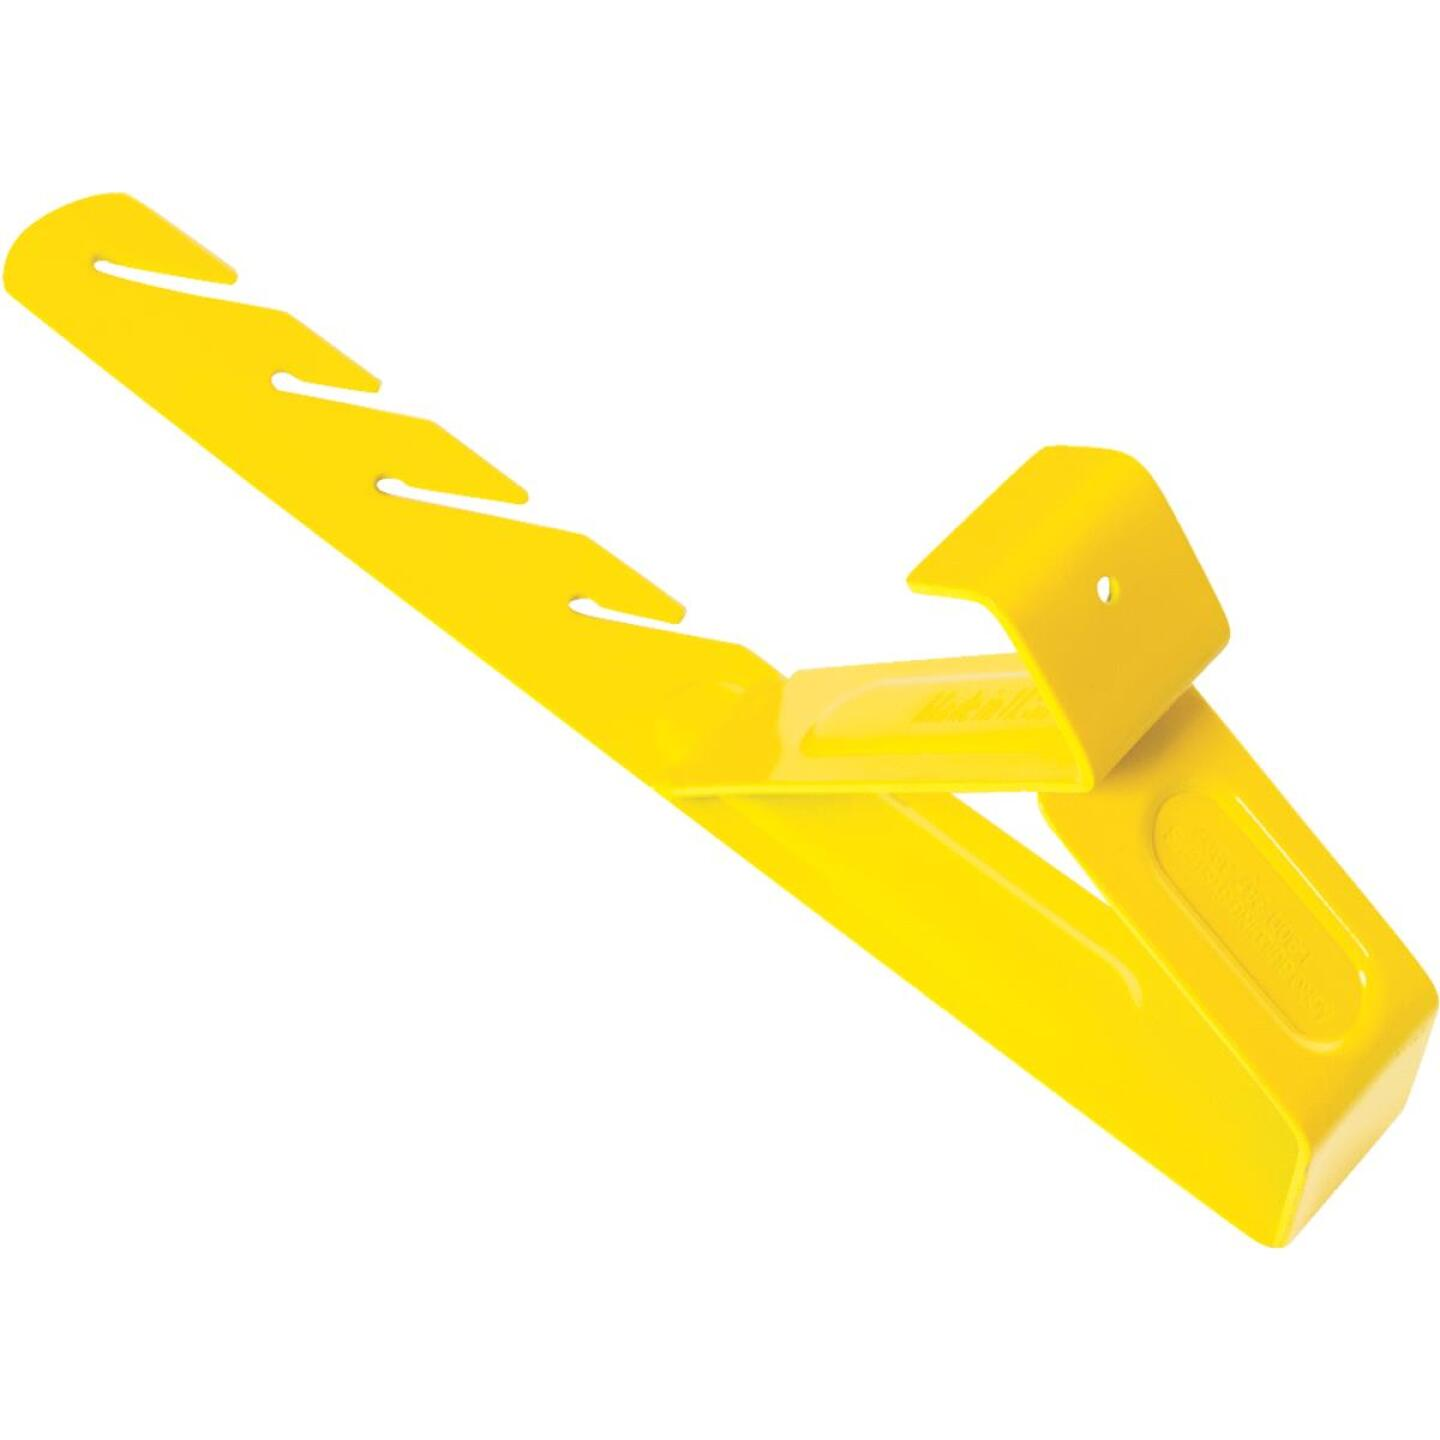 Acro 16 In. 2x6 45 Degree Fixed Roof Bracket Image 1